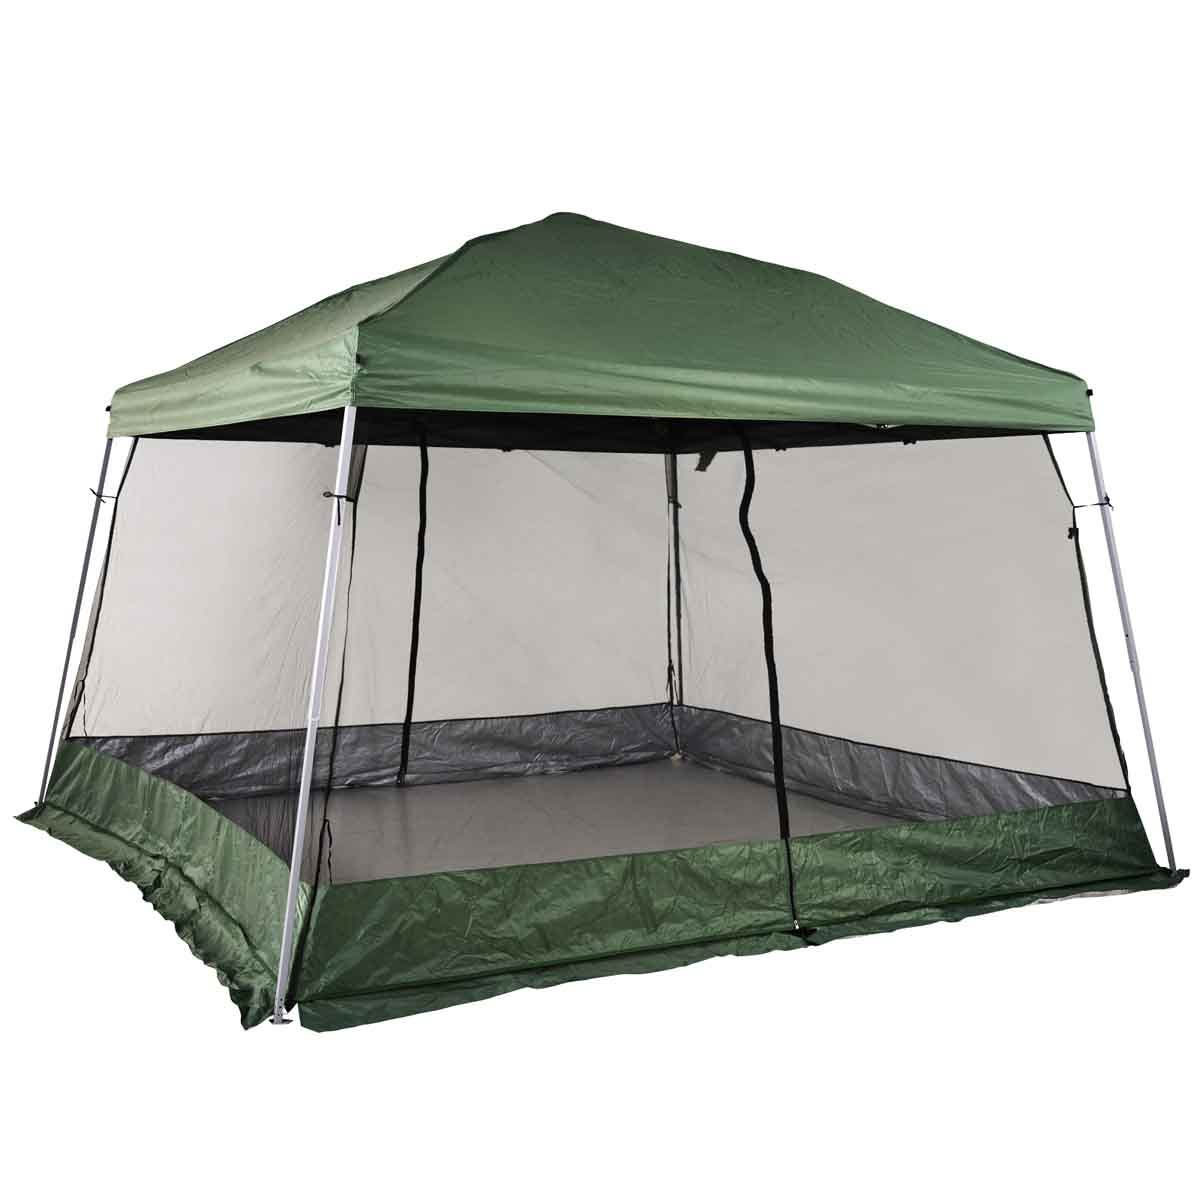 Outsunny 3.6 x 3.6 Pop Up Gazebo with Mesh Walls - Green